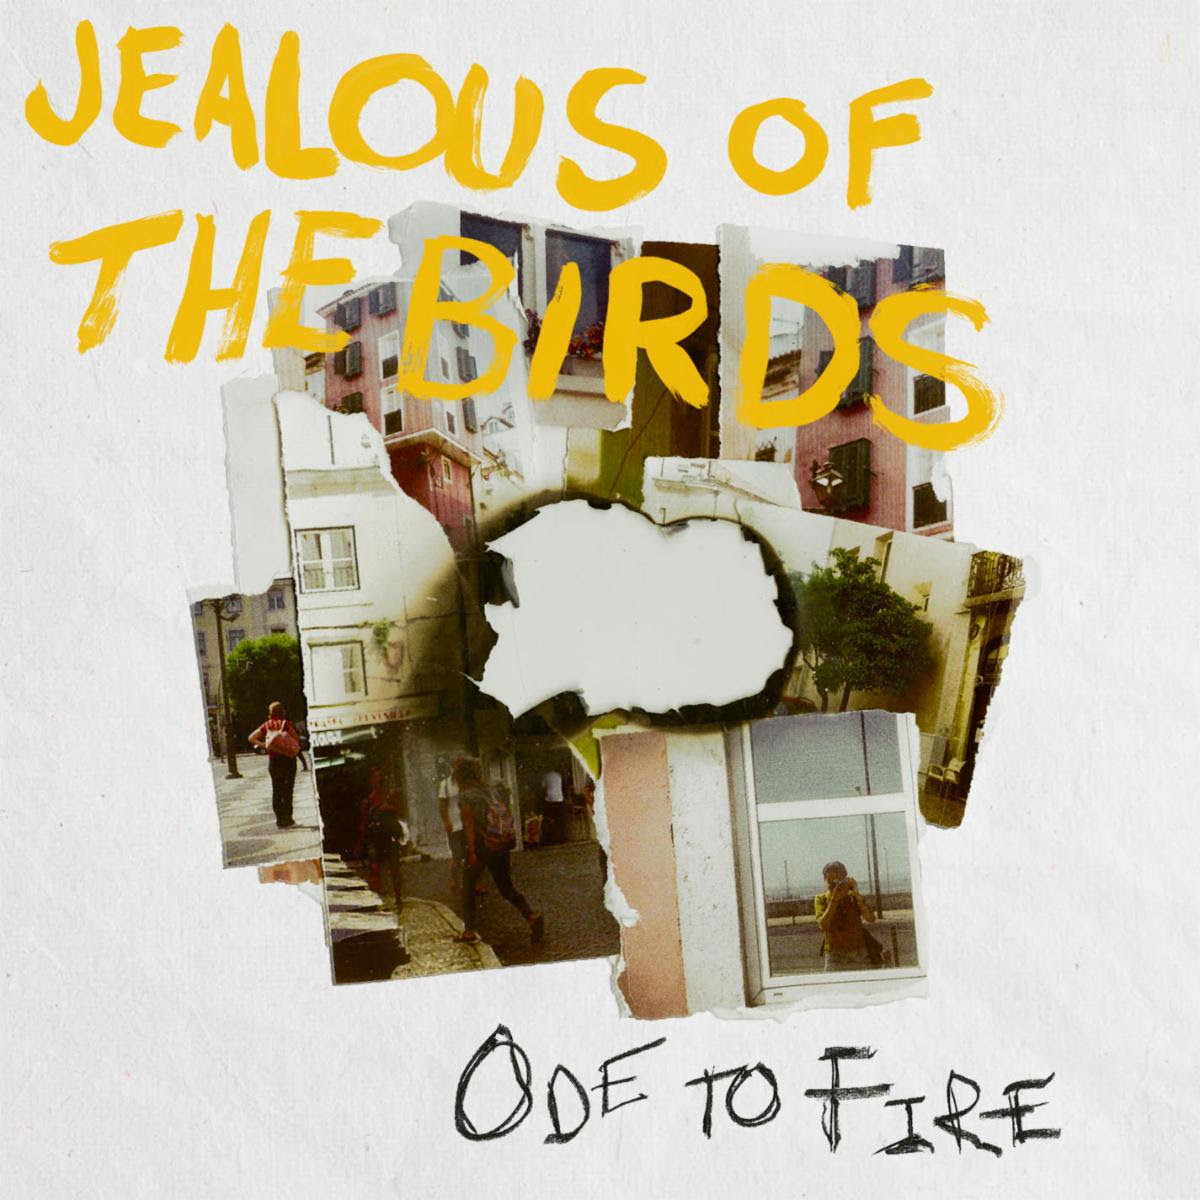 """Ode To Fire"" by Irish singer/songwriter Naomi Hamilton AKA: Jealous of the Birds is Northern Transmissions Song of the Day"